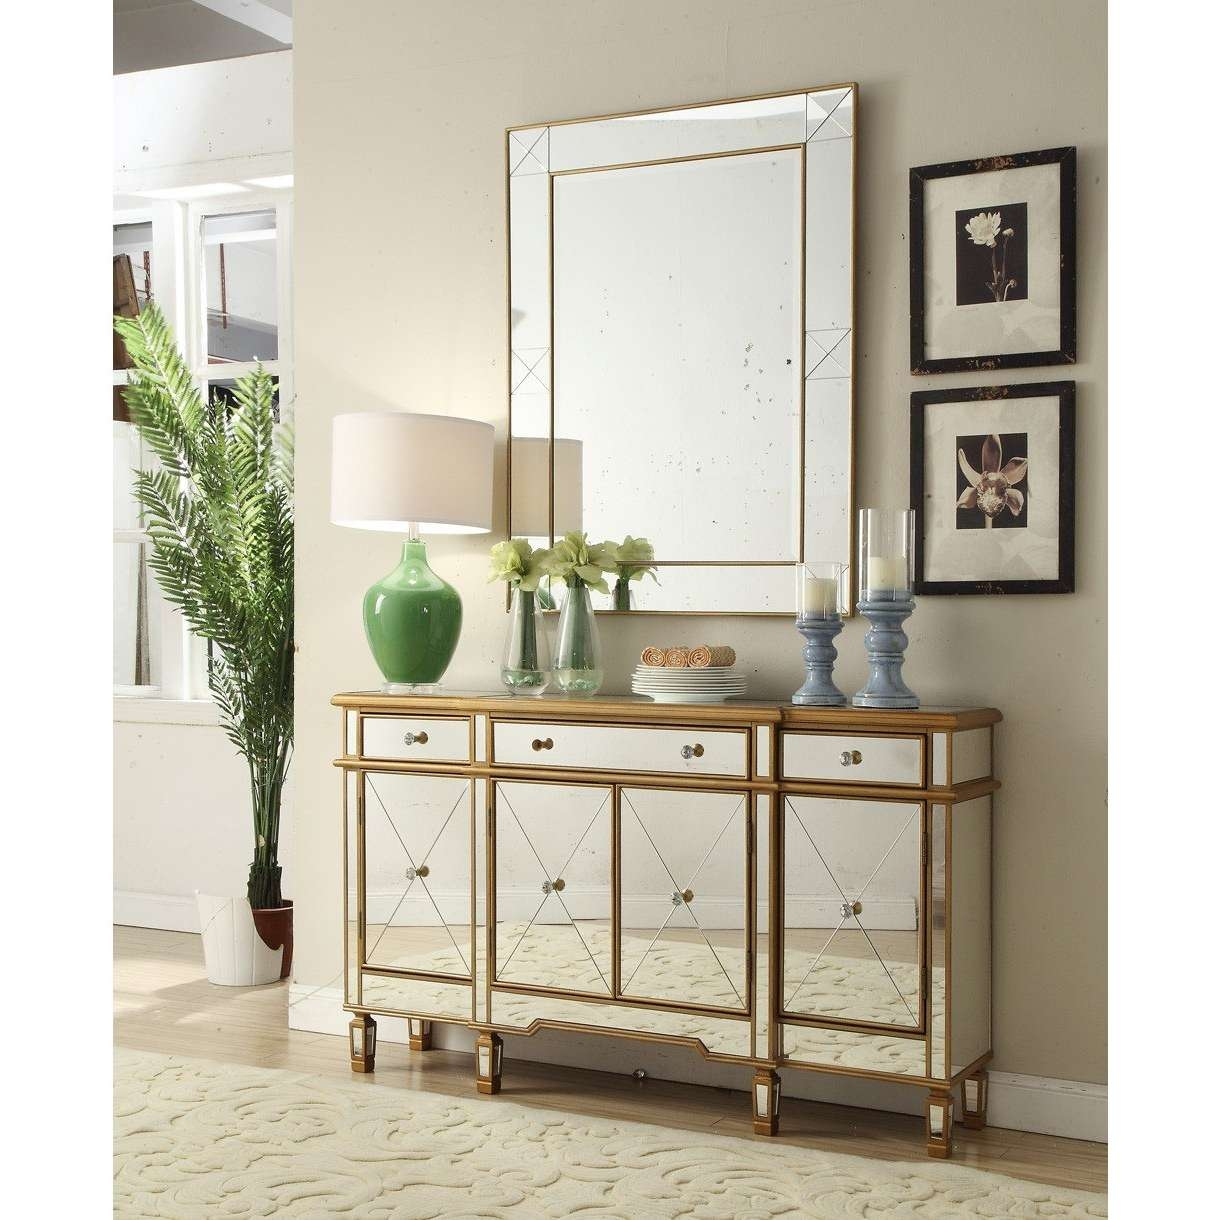 Sideboards: Astonishing Sideboard And Mirror White Mirrored Throughout Small Mirrored Sideboards (View 4 of 20)